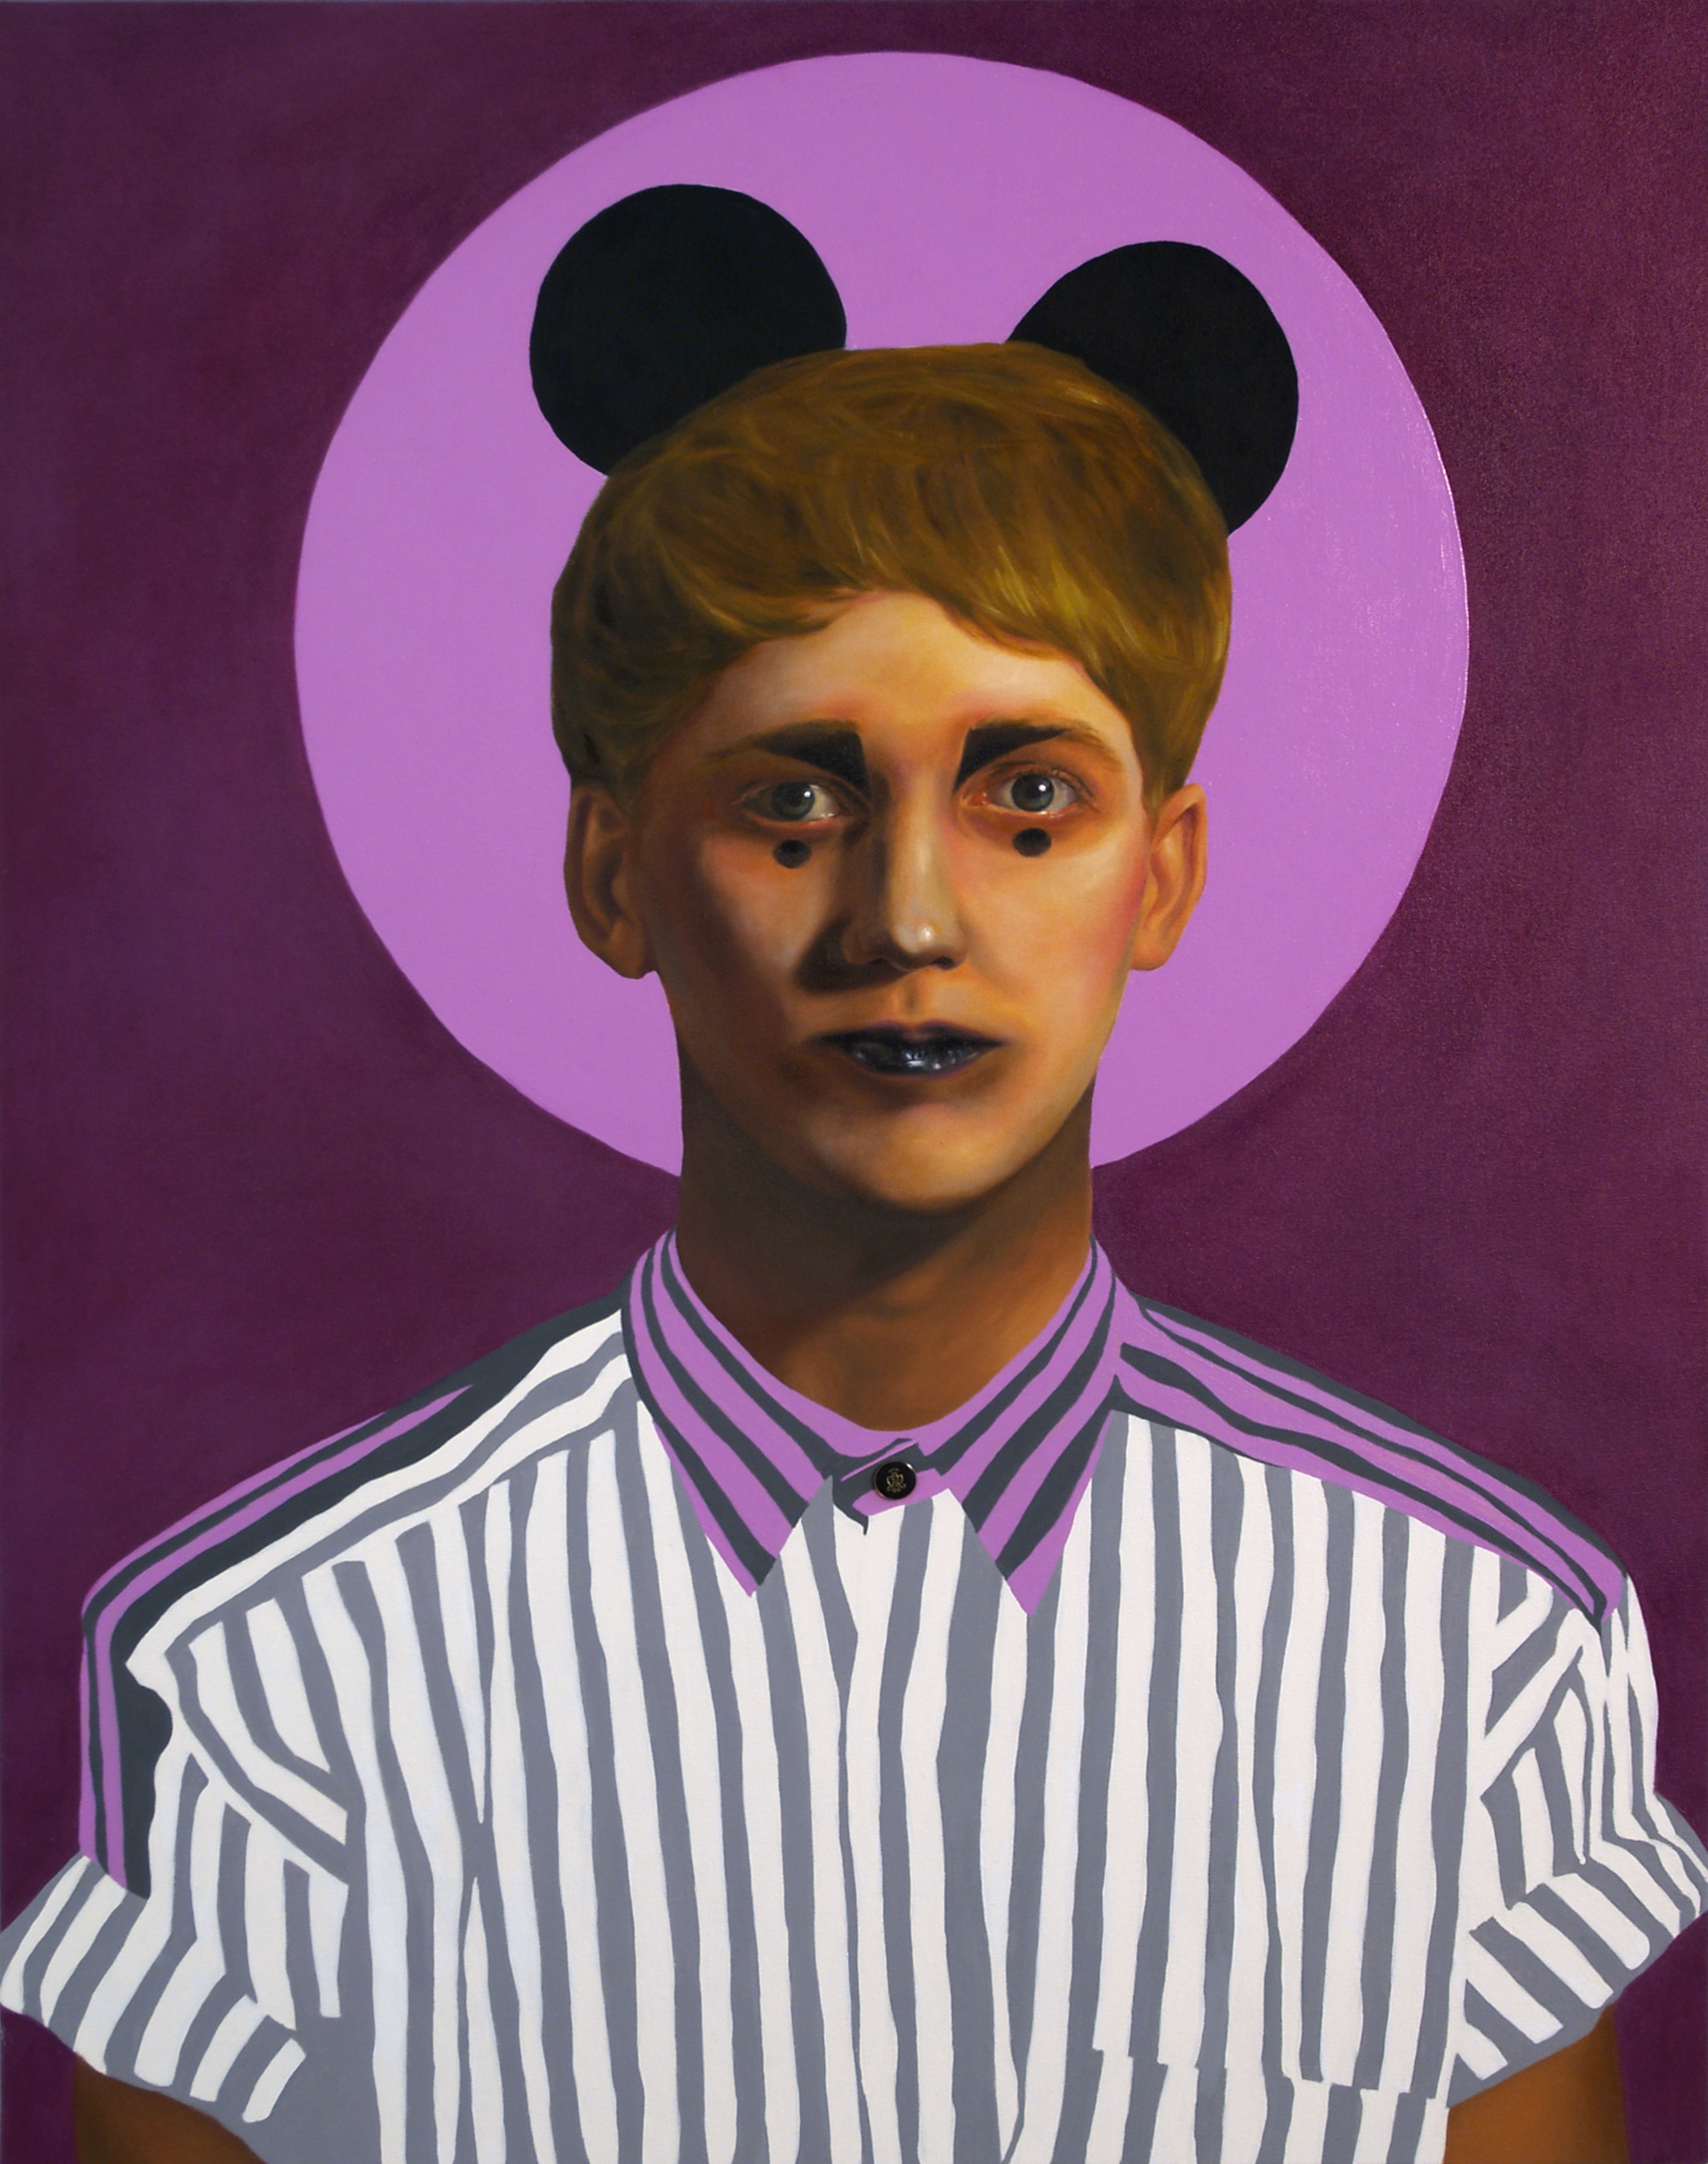 Ruby Chew, Tom, Oil, Enamel and Button on Canvas, 122 x 91 cm, 2010